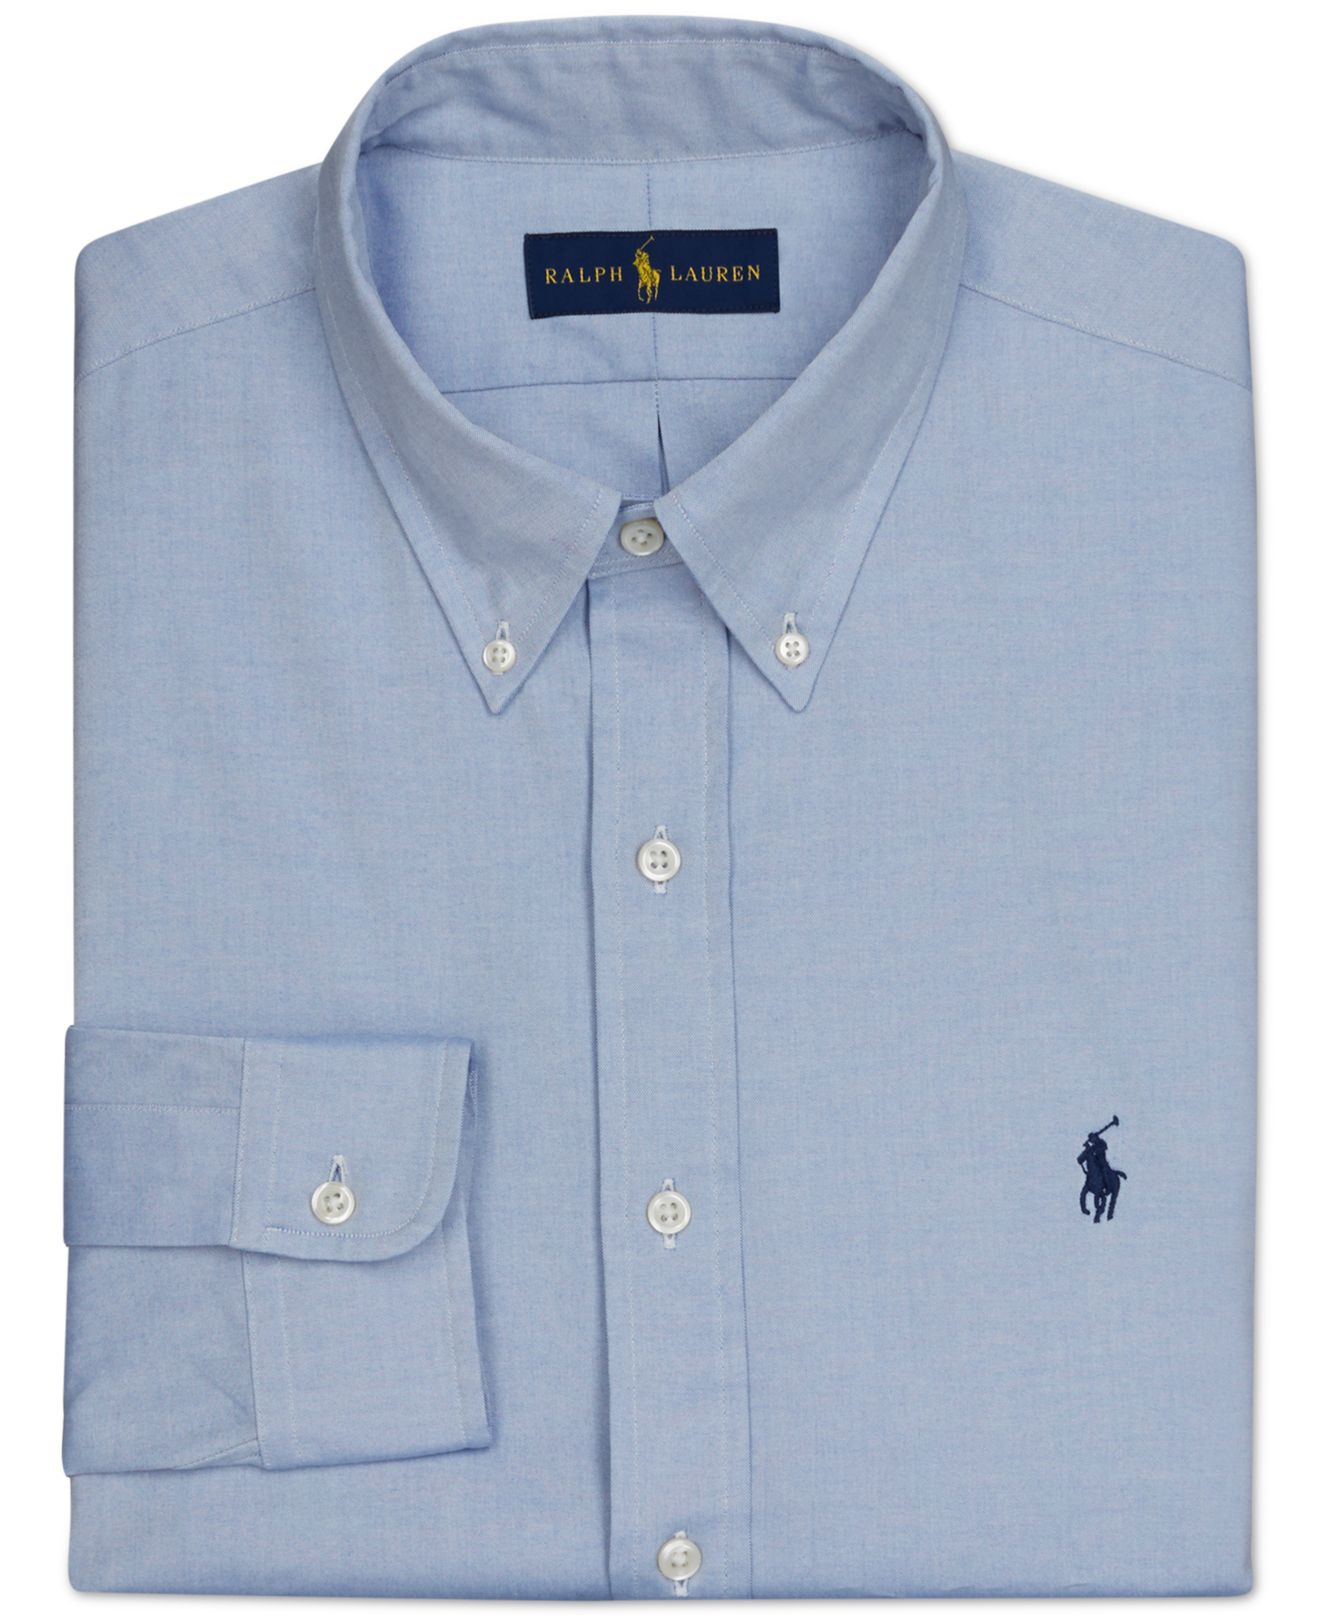 Polo Ralph Lauren Pinpoint Oxford Solid Dress Shirt In